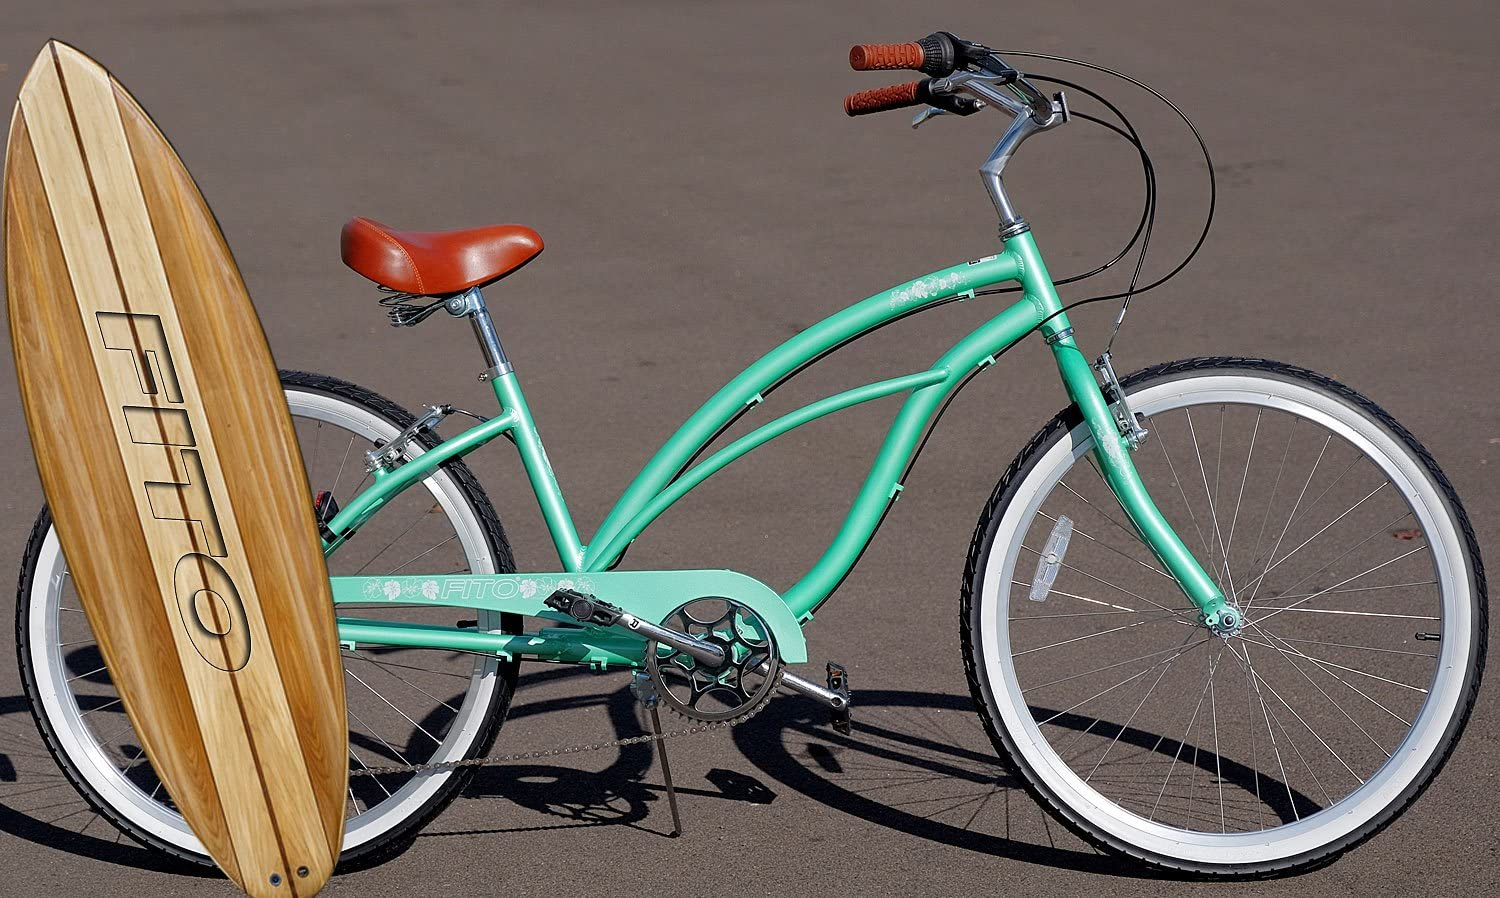 Fito Anti Rust Light Weight Aluminum Alloy Frame, Marina Alloy 7-Speed for Women – Mint Green, 26 Wheel Beach Cruiser Bike Bicycle